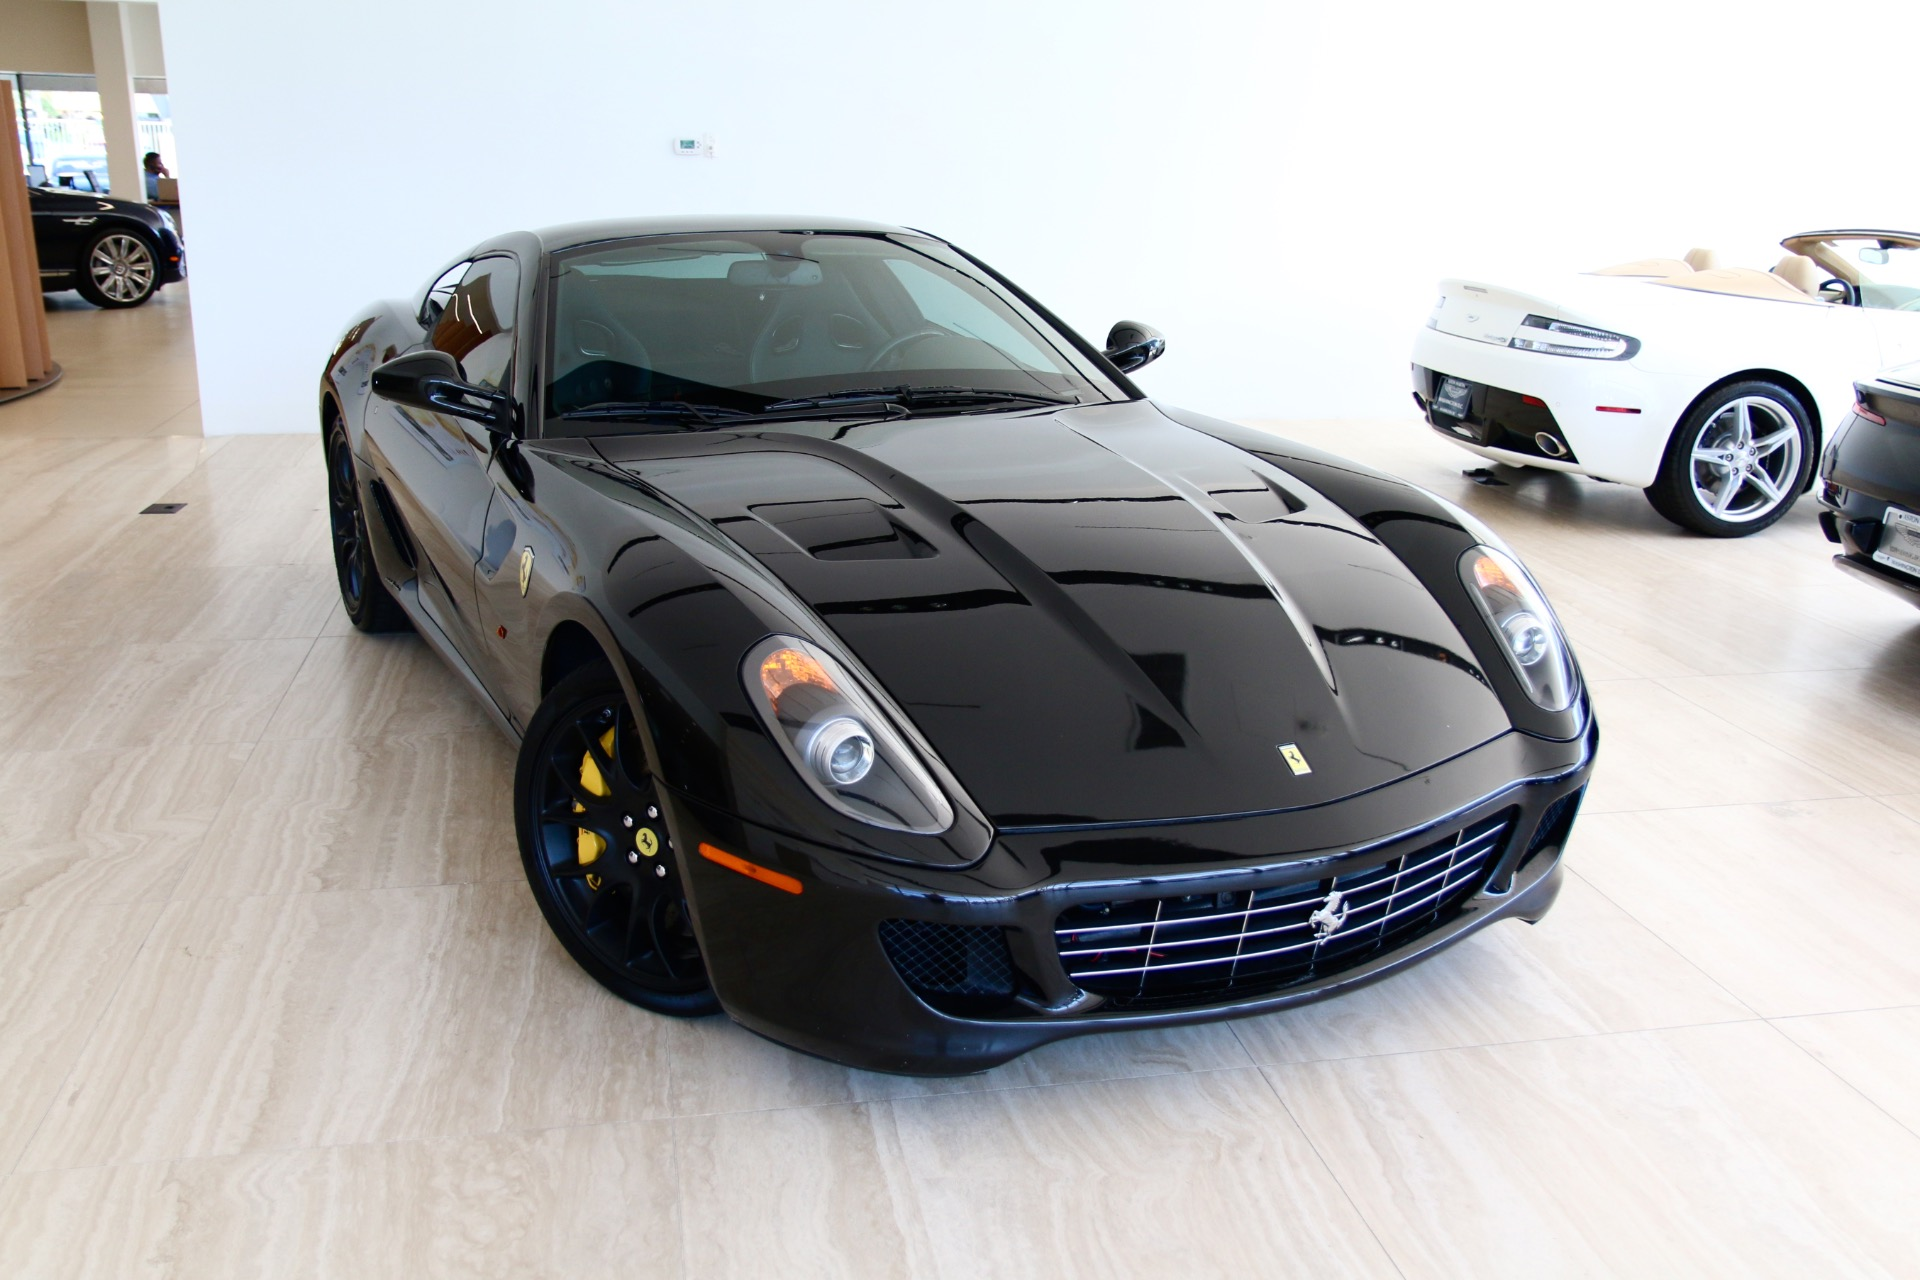 for warrior driver and cars original sale hp the used eyecarwall photo reviews car track com revealed price news photos specs cheap ferrari pista s